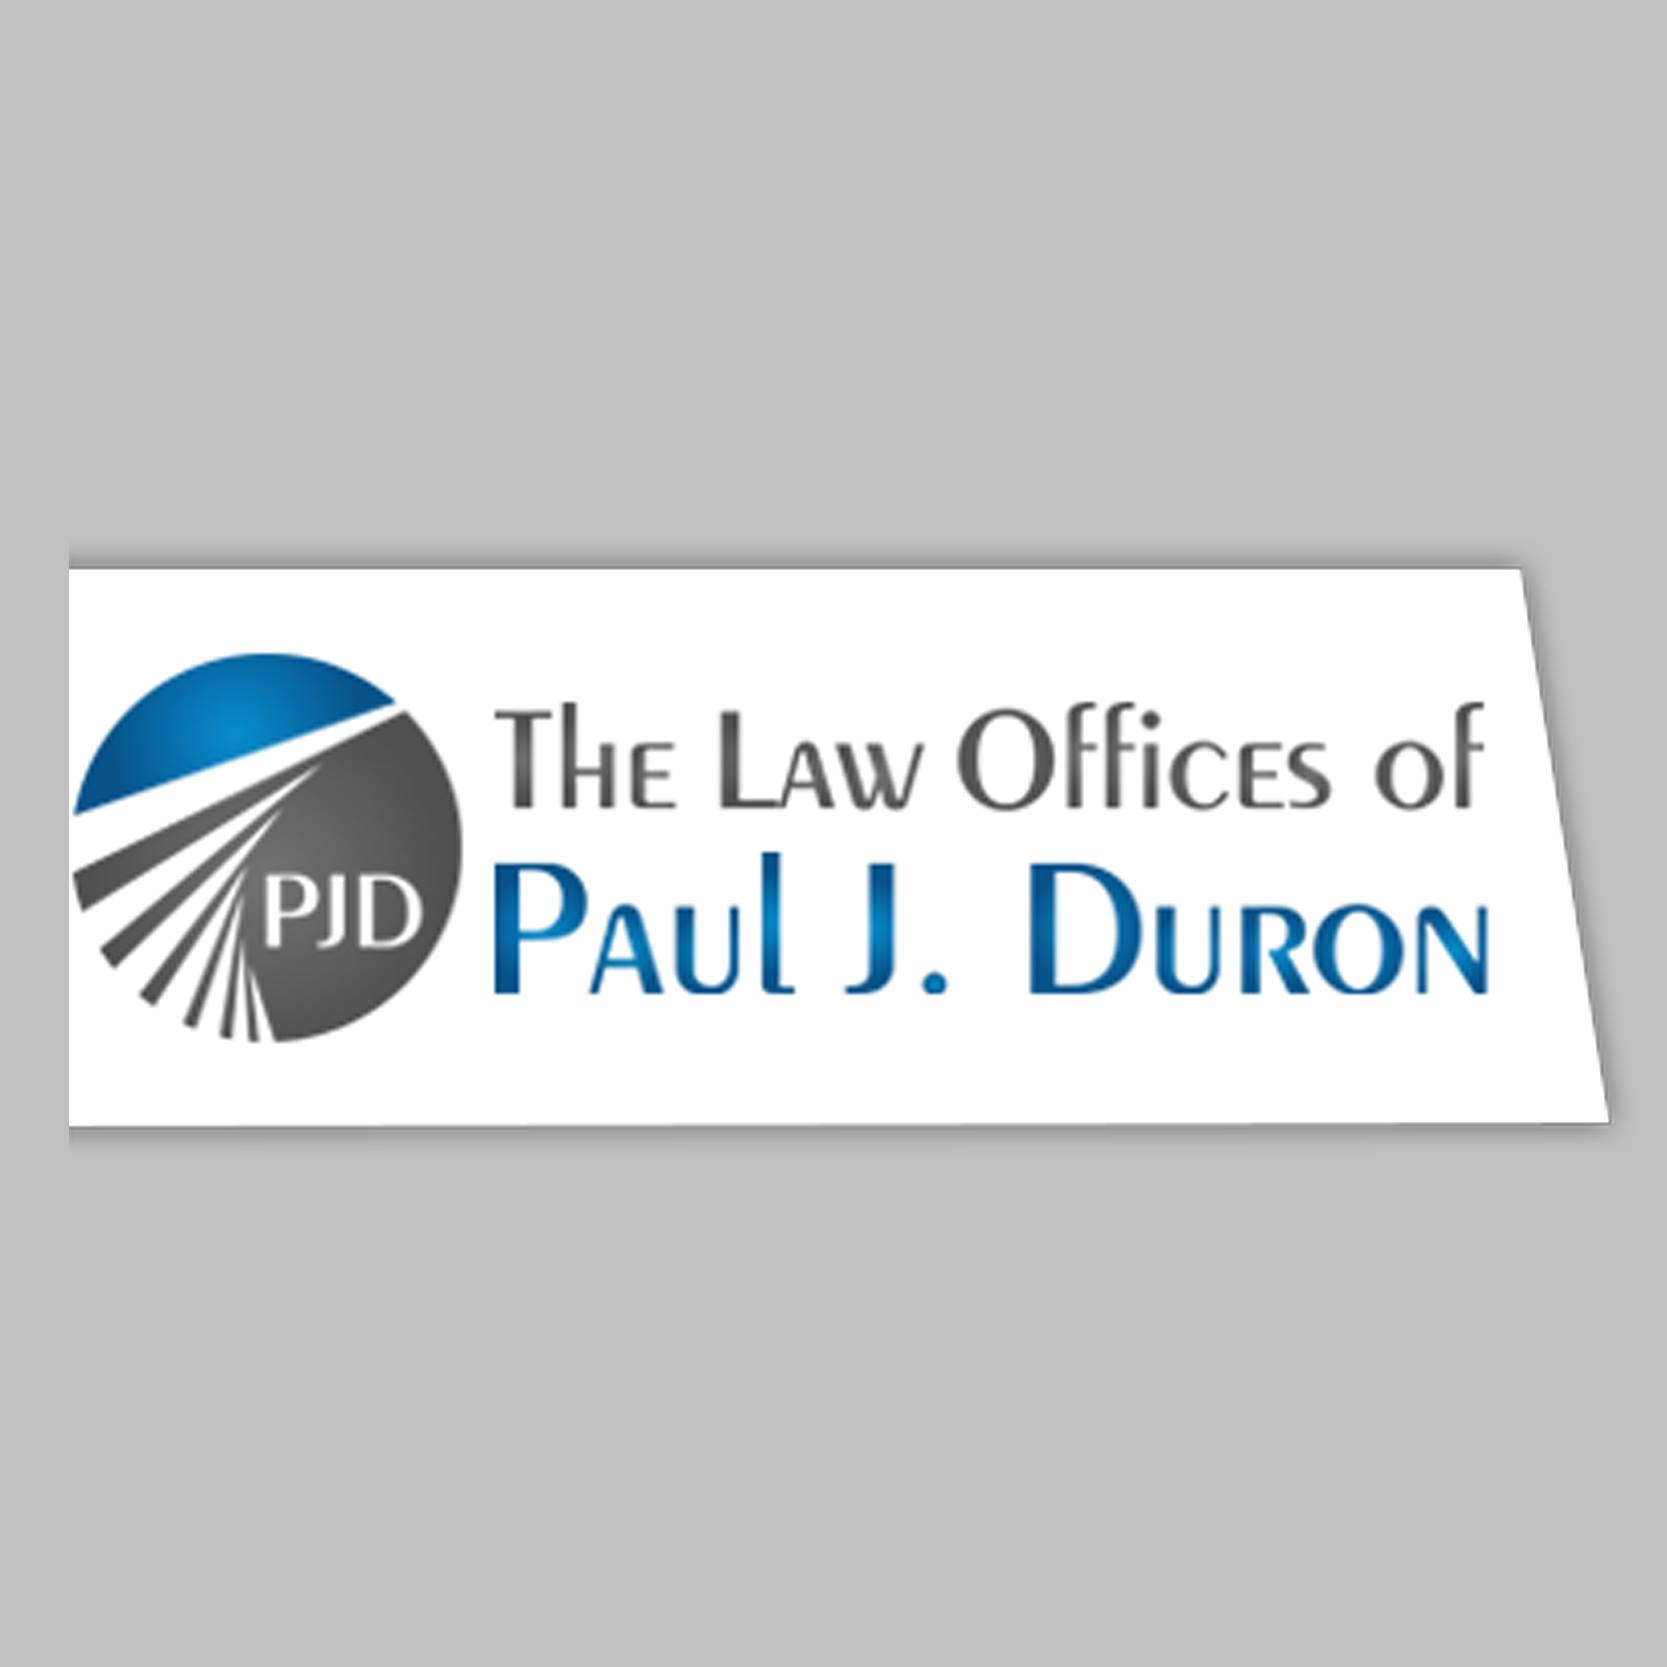 Company logo of The Law Offices of Paul J. Duron